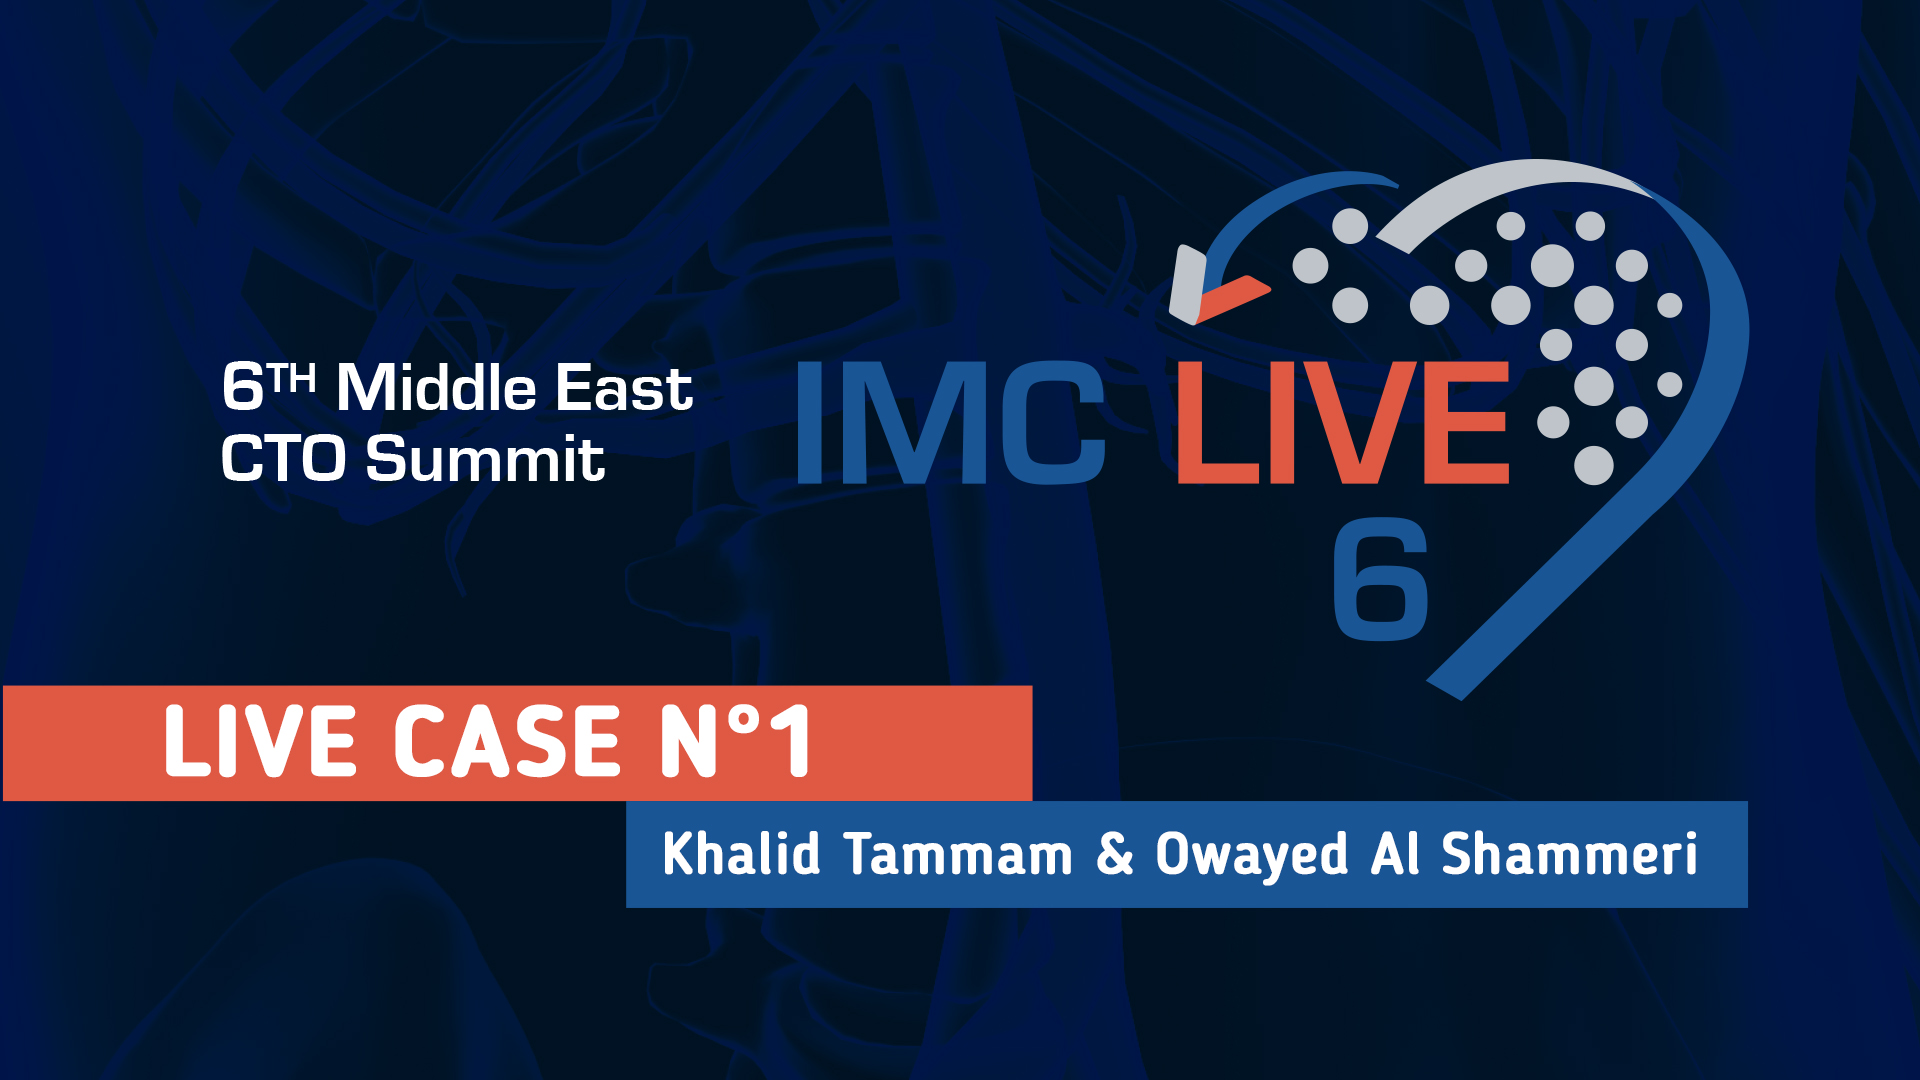 Live Case 10: Dr James Spratt & Dr Mohamed Al Shehri